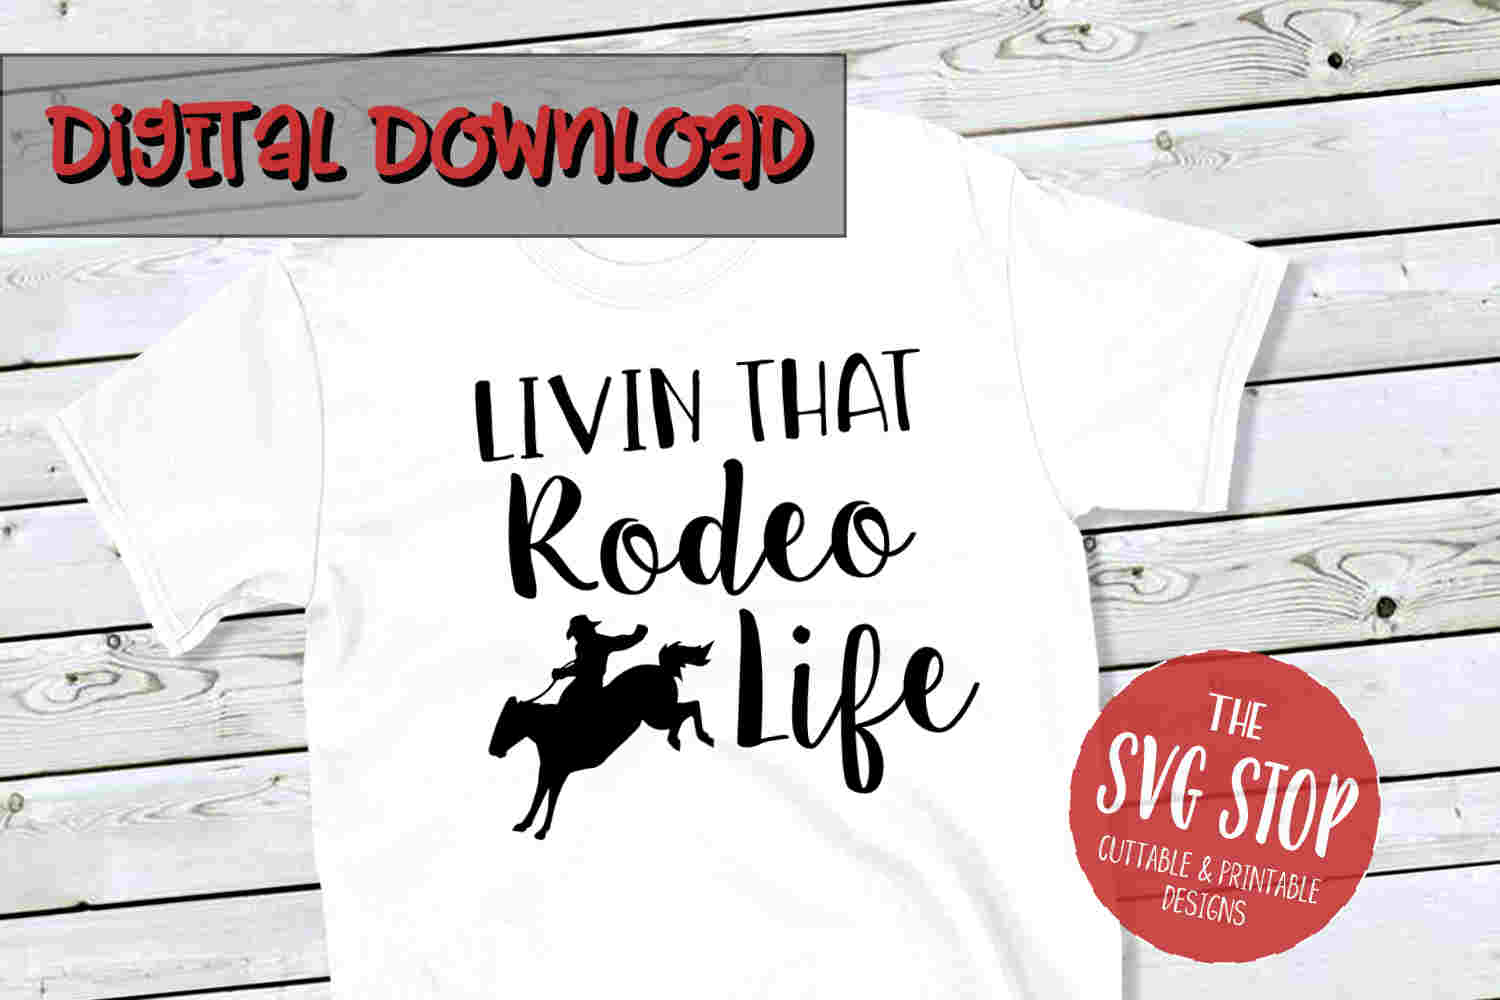 Rodeo Life -SVG, PNG, DXF example image 1